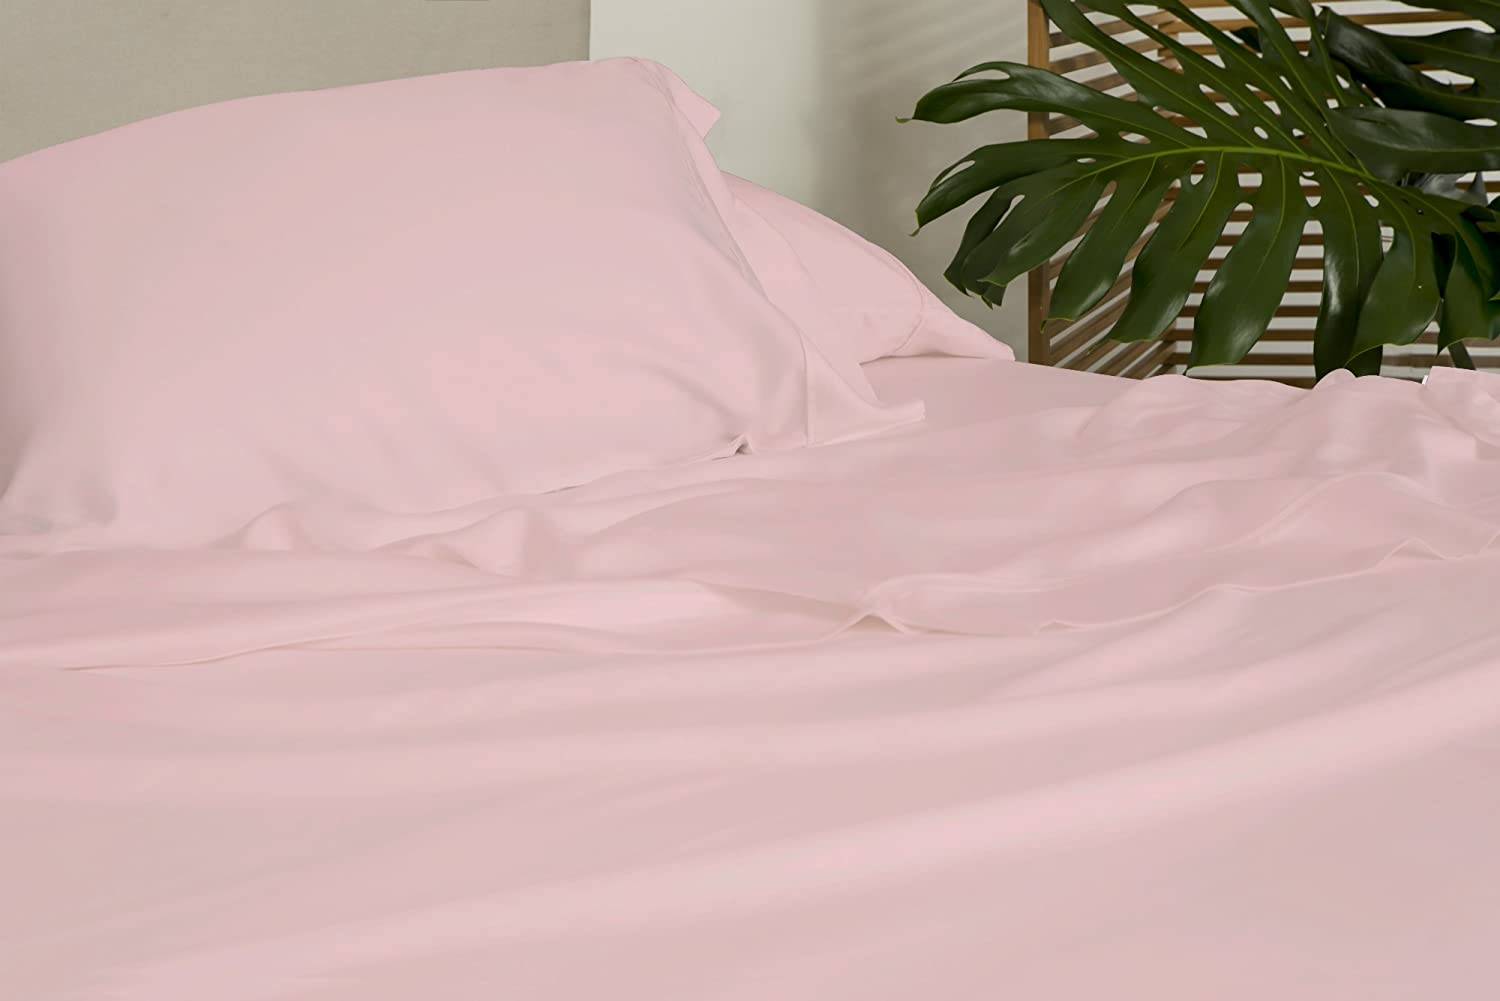 SHEEX Arctic Aire Max Sheet Set with 1 Pillowcase, 100% Tencel with CoolX Technology, Pink, Twin